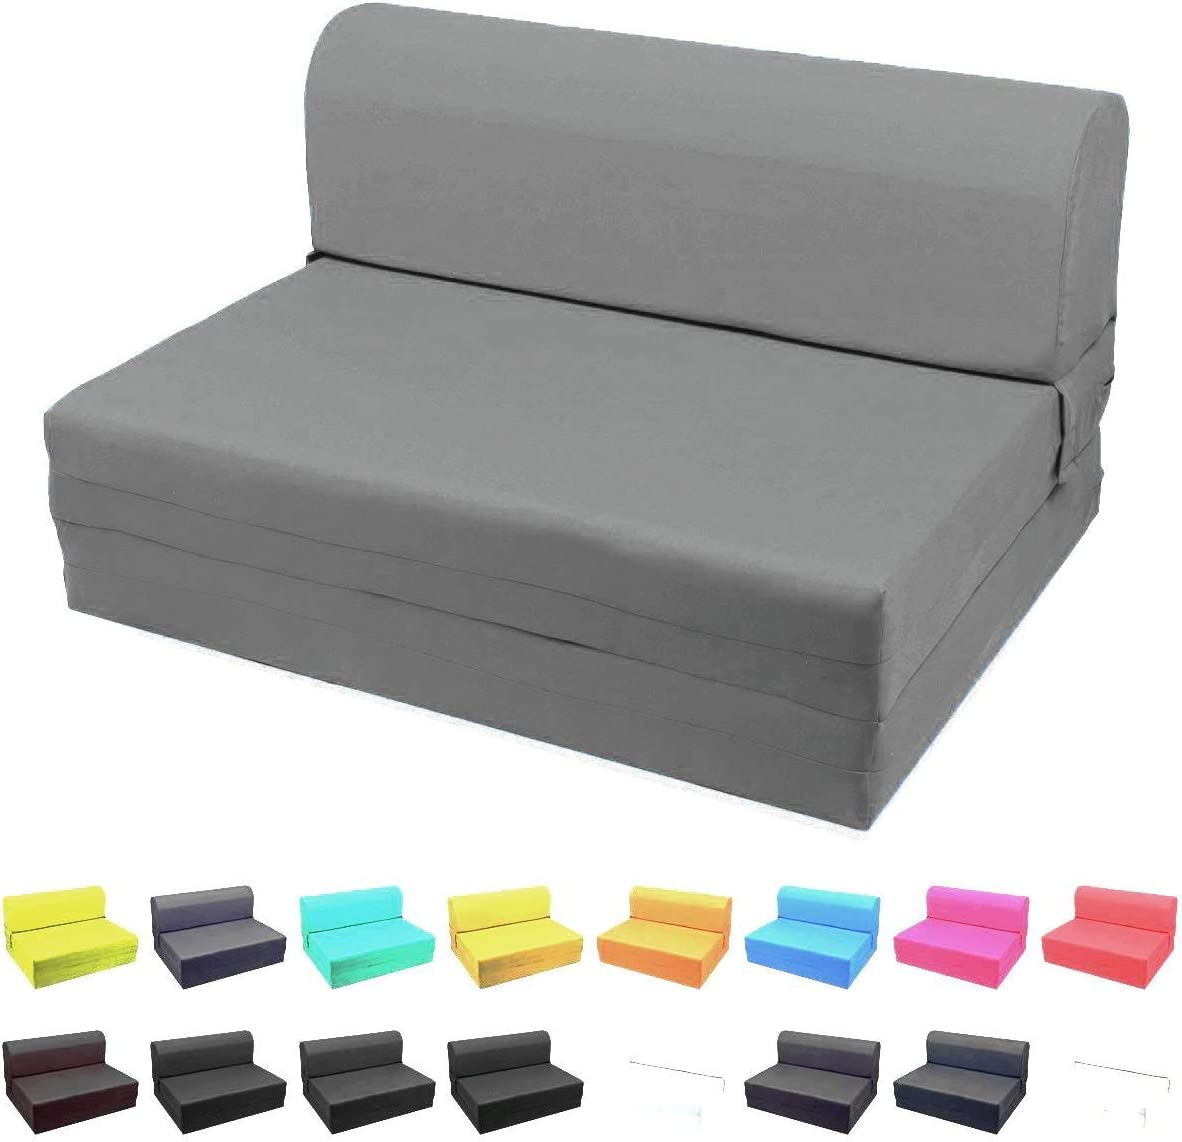 Magshion Futon Furniture Sleeper Chair Folding Foam Bed Choose Color & Sized Single,Twin or Full (Single (5x23x70), Dark Grey)